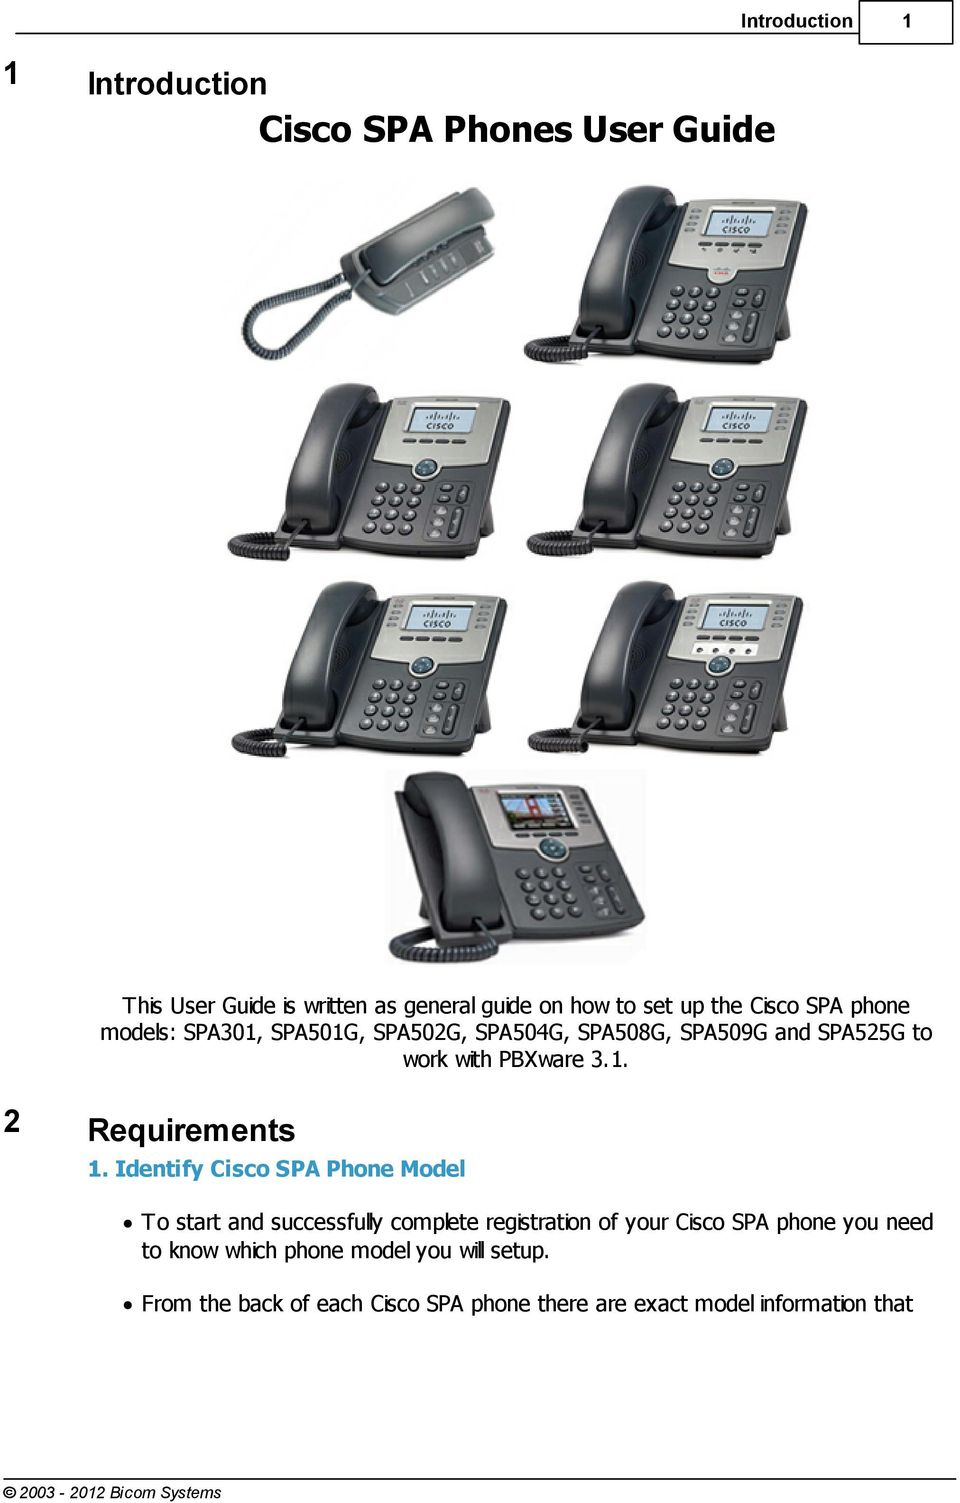 Identify Cisco SPA Phone Model To start and successfully complete registration of your Cisco SPA phone you need to